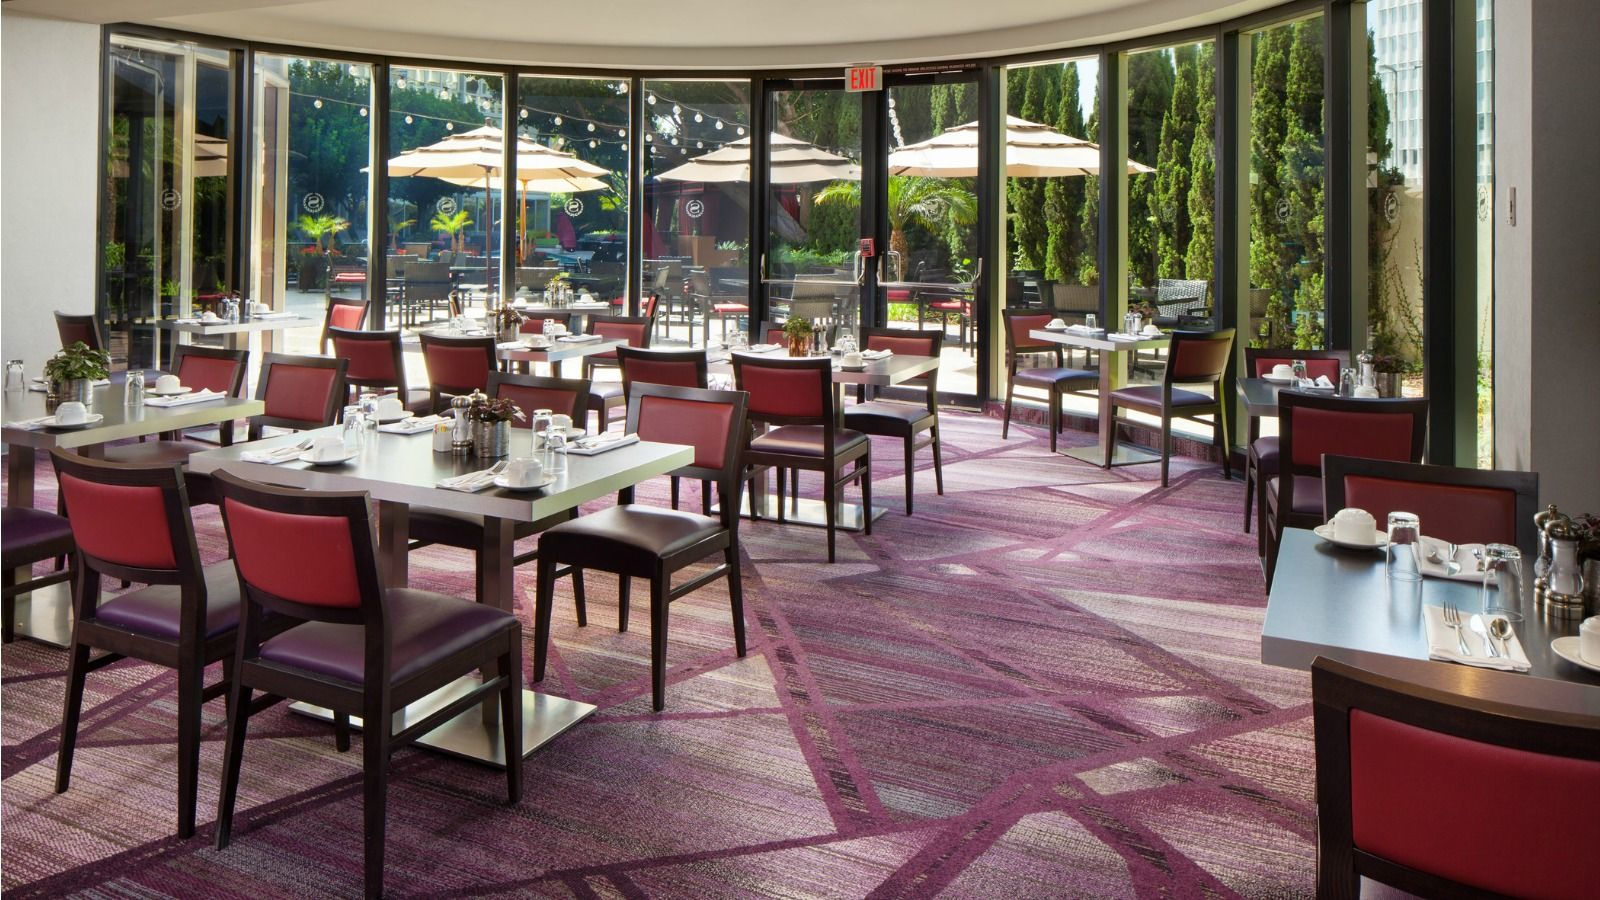 Restaurants In LAX - The Brasserie